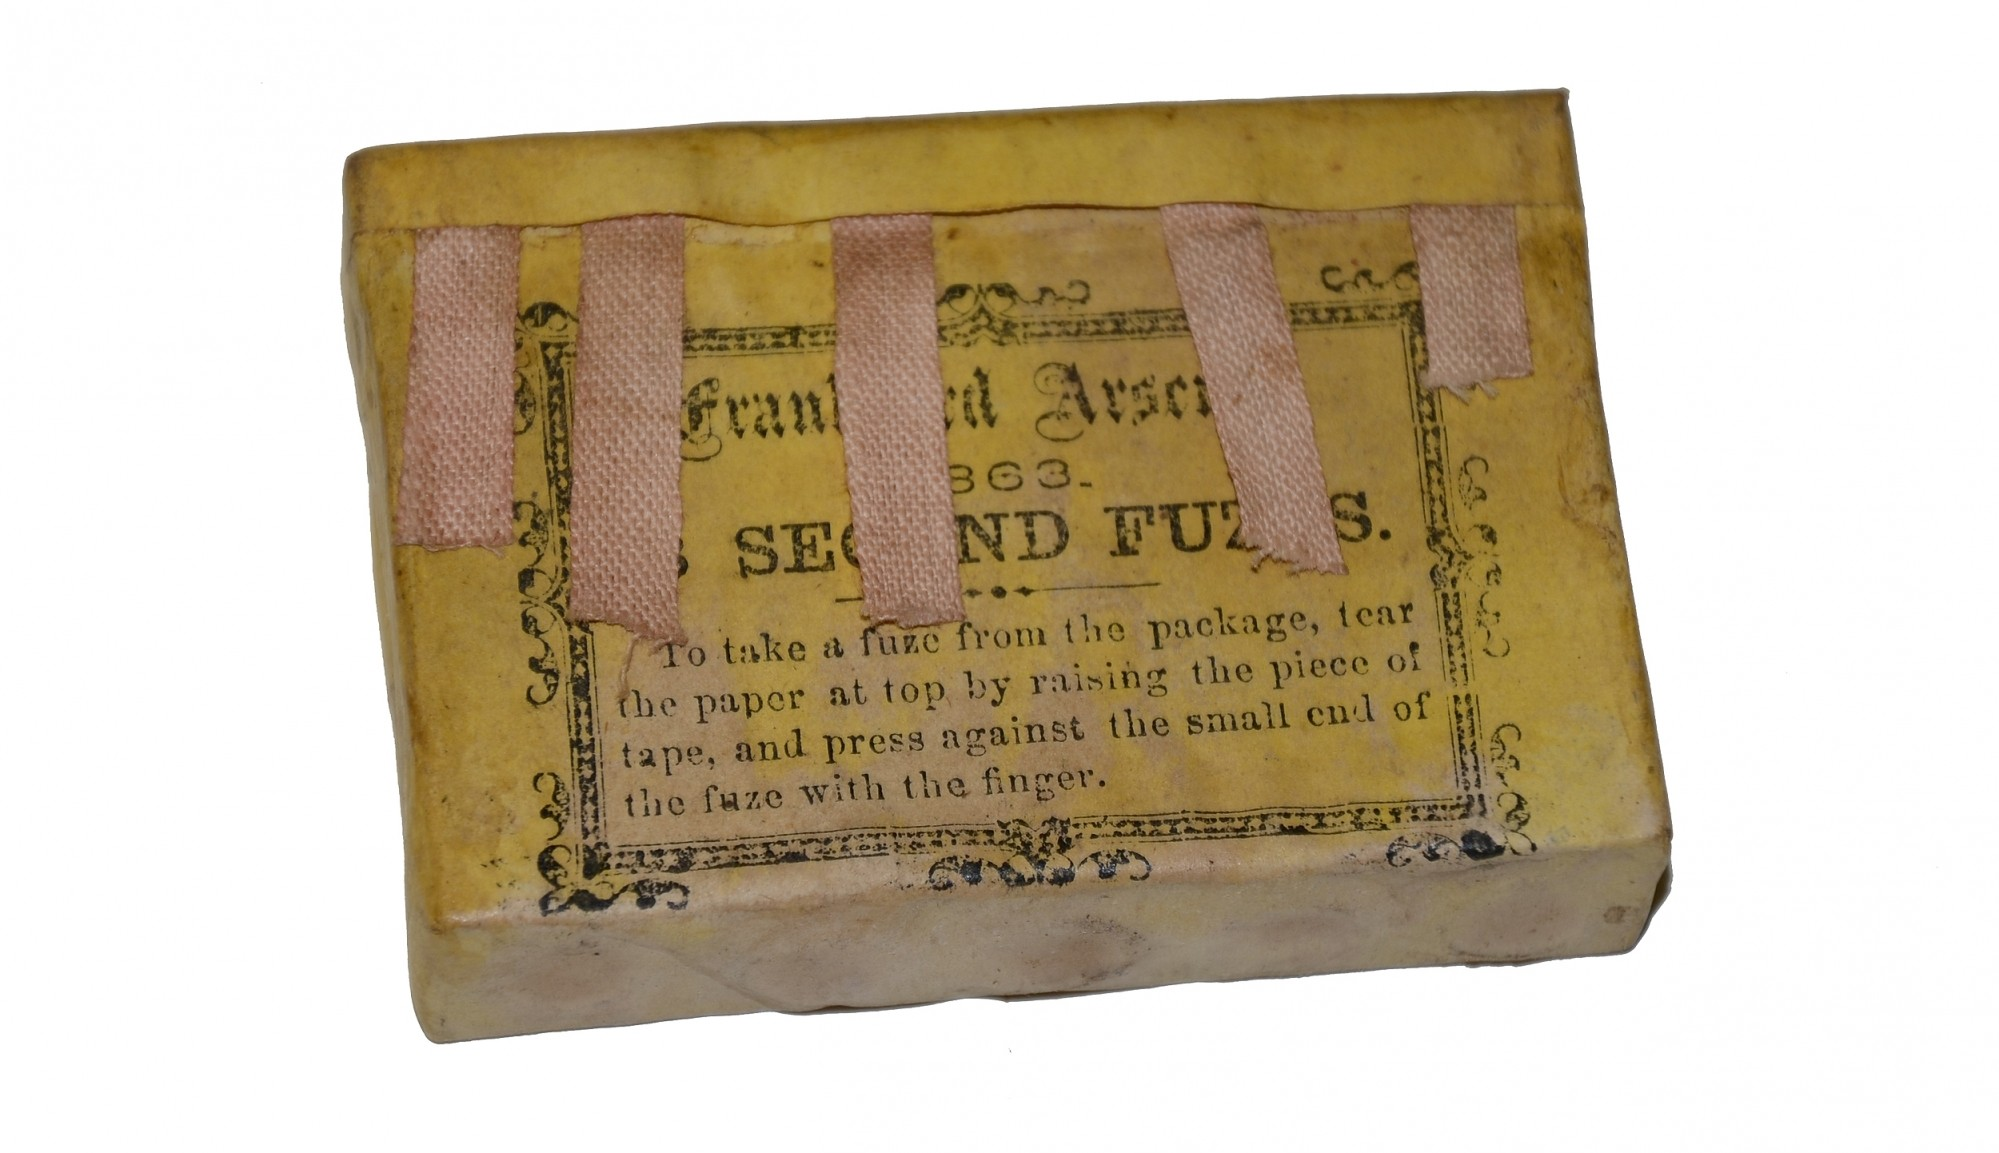 PACK OF UNOPENED ARTILLERY FUSES DATED 1863